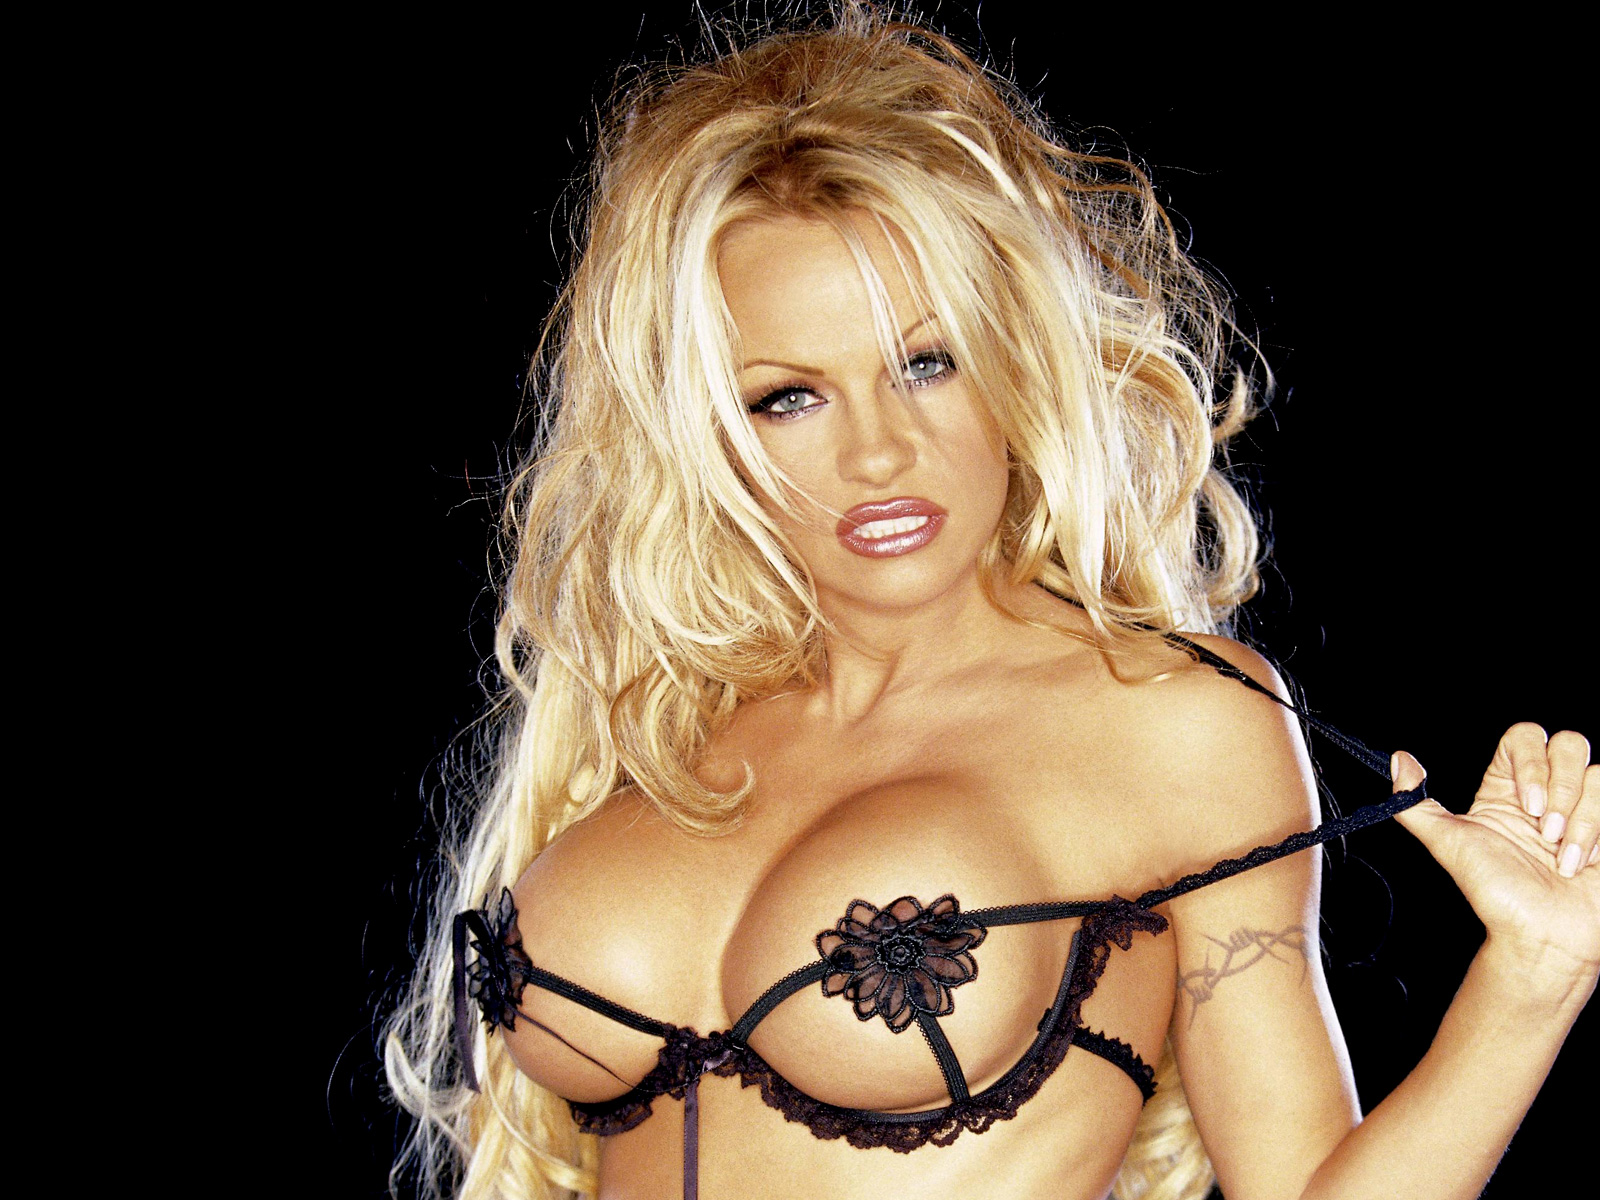 Balls sucked naked hot sex pamela anderson sousa